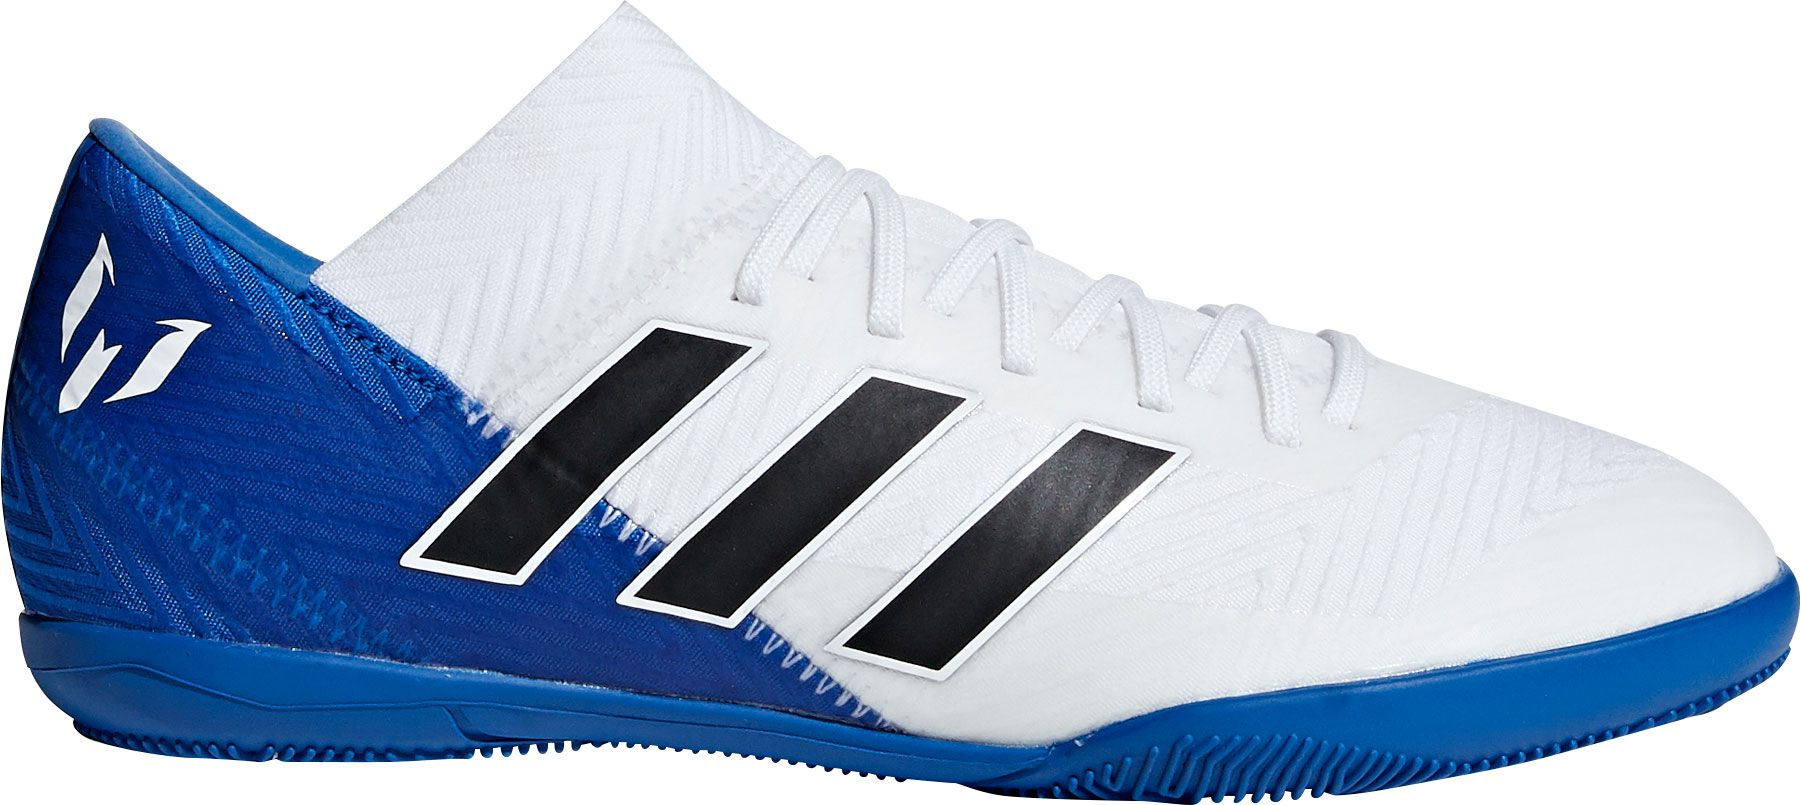 size 40 08fe3 a6957 adidas Kids  Nemeziz Messi Tango 18.3 Indoor Soccer Shoes, White